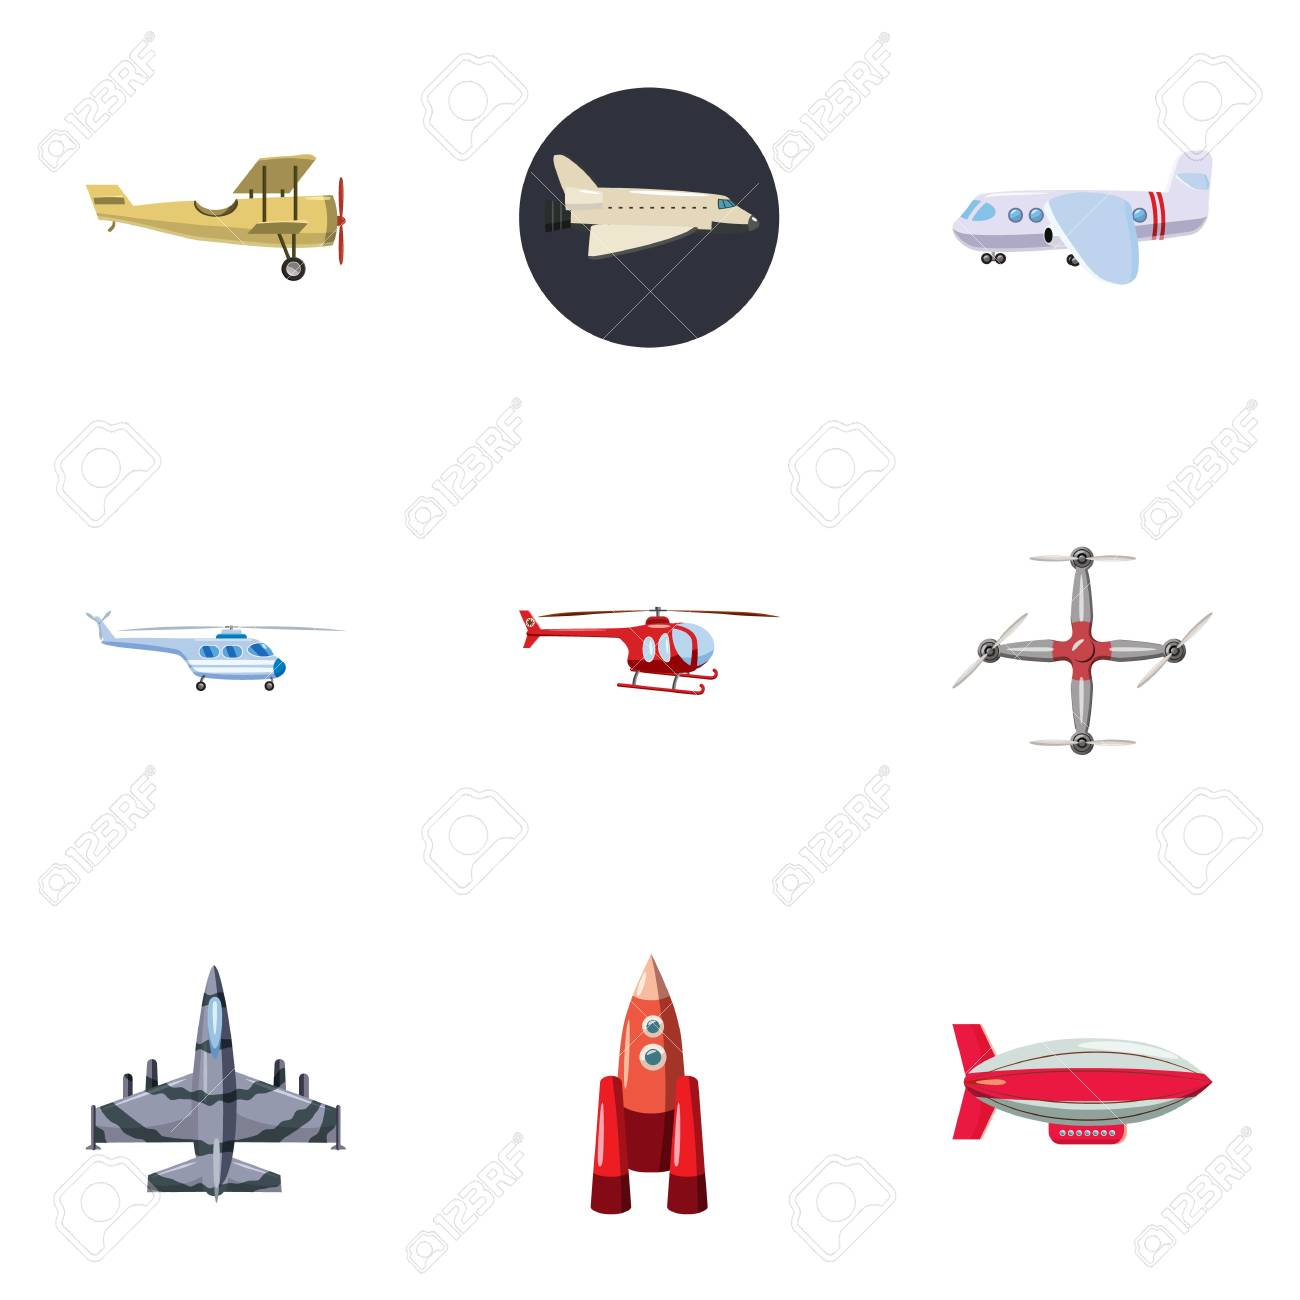 Flying Vehicles Icons Set Cartoon Illustration Of 9 Flying Vehicles Royalty Free Cliparts Vectors And Stock Illustration Image 69089564